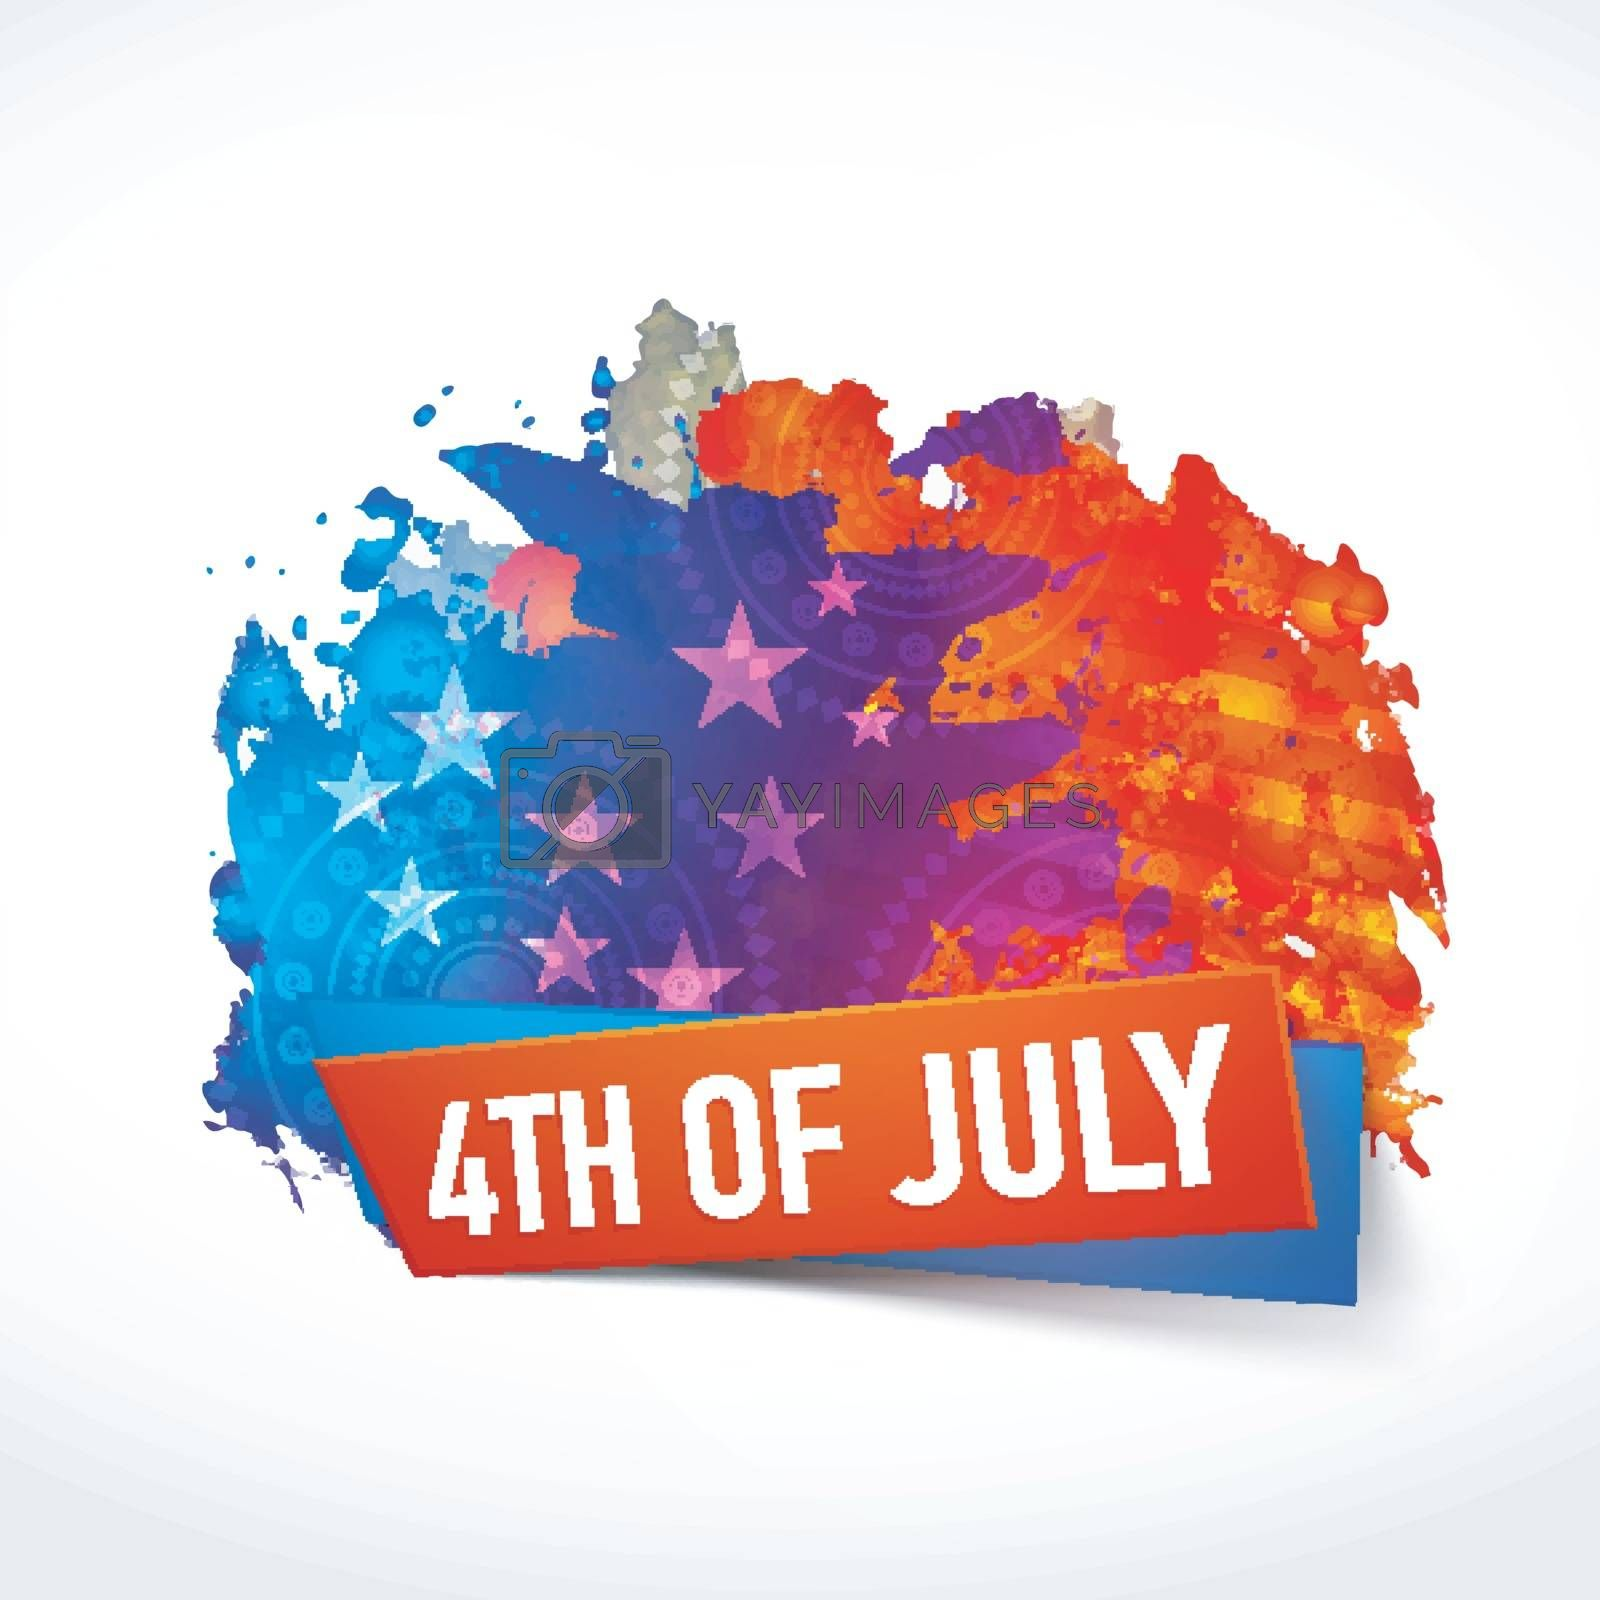 4th of July abstract watercolor splash background in American Flag Colors.